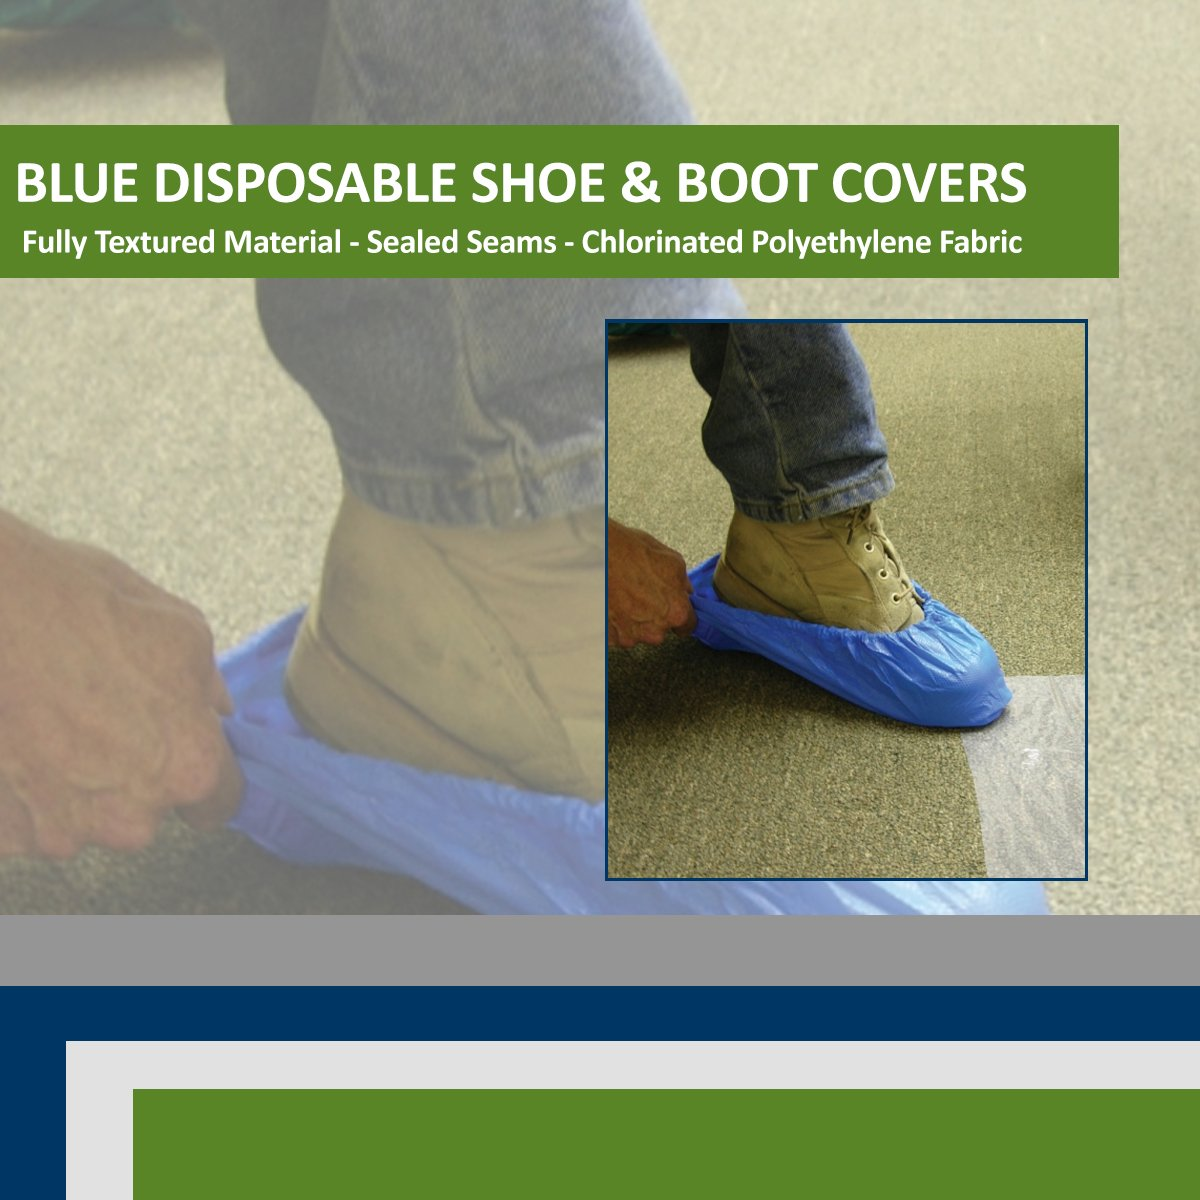 Blue CPE (.55 MM) Shoe & Boot Cover Booties, Water Proof CPE Material, Indoor & outdoor shoe or boot protection, Non Slip disposable (Size 2X 300 Pack) by Sara Glove (Image #3)